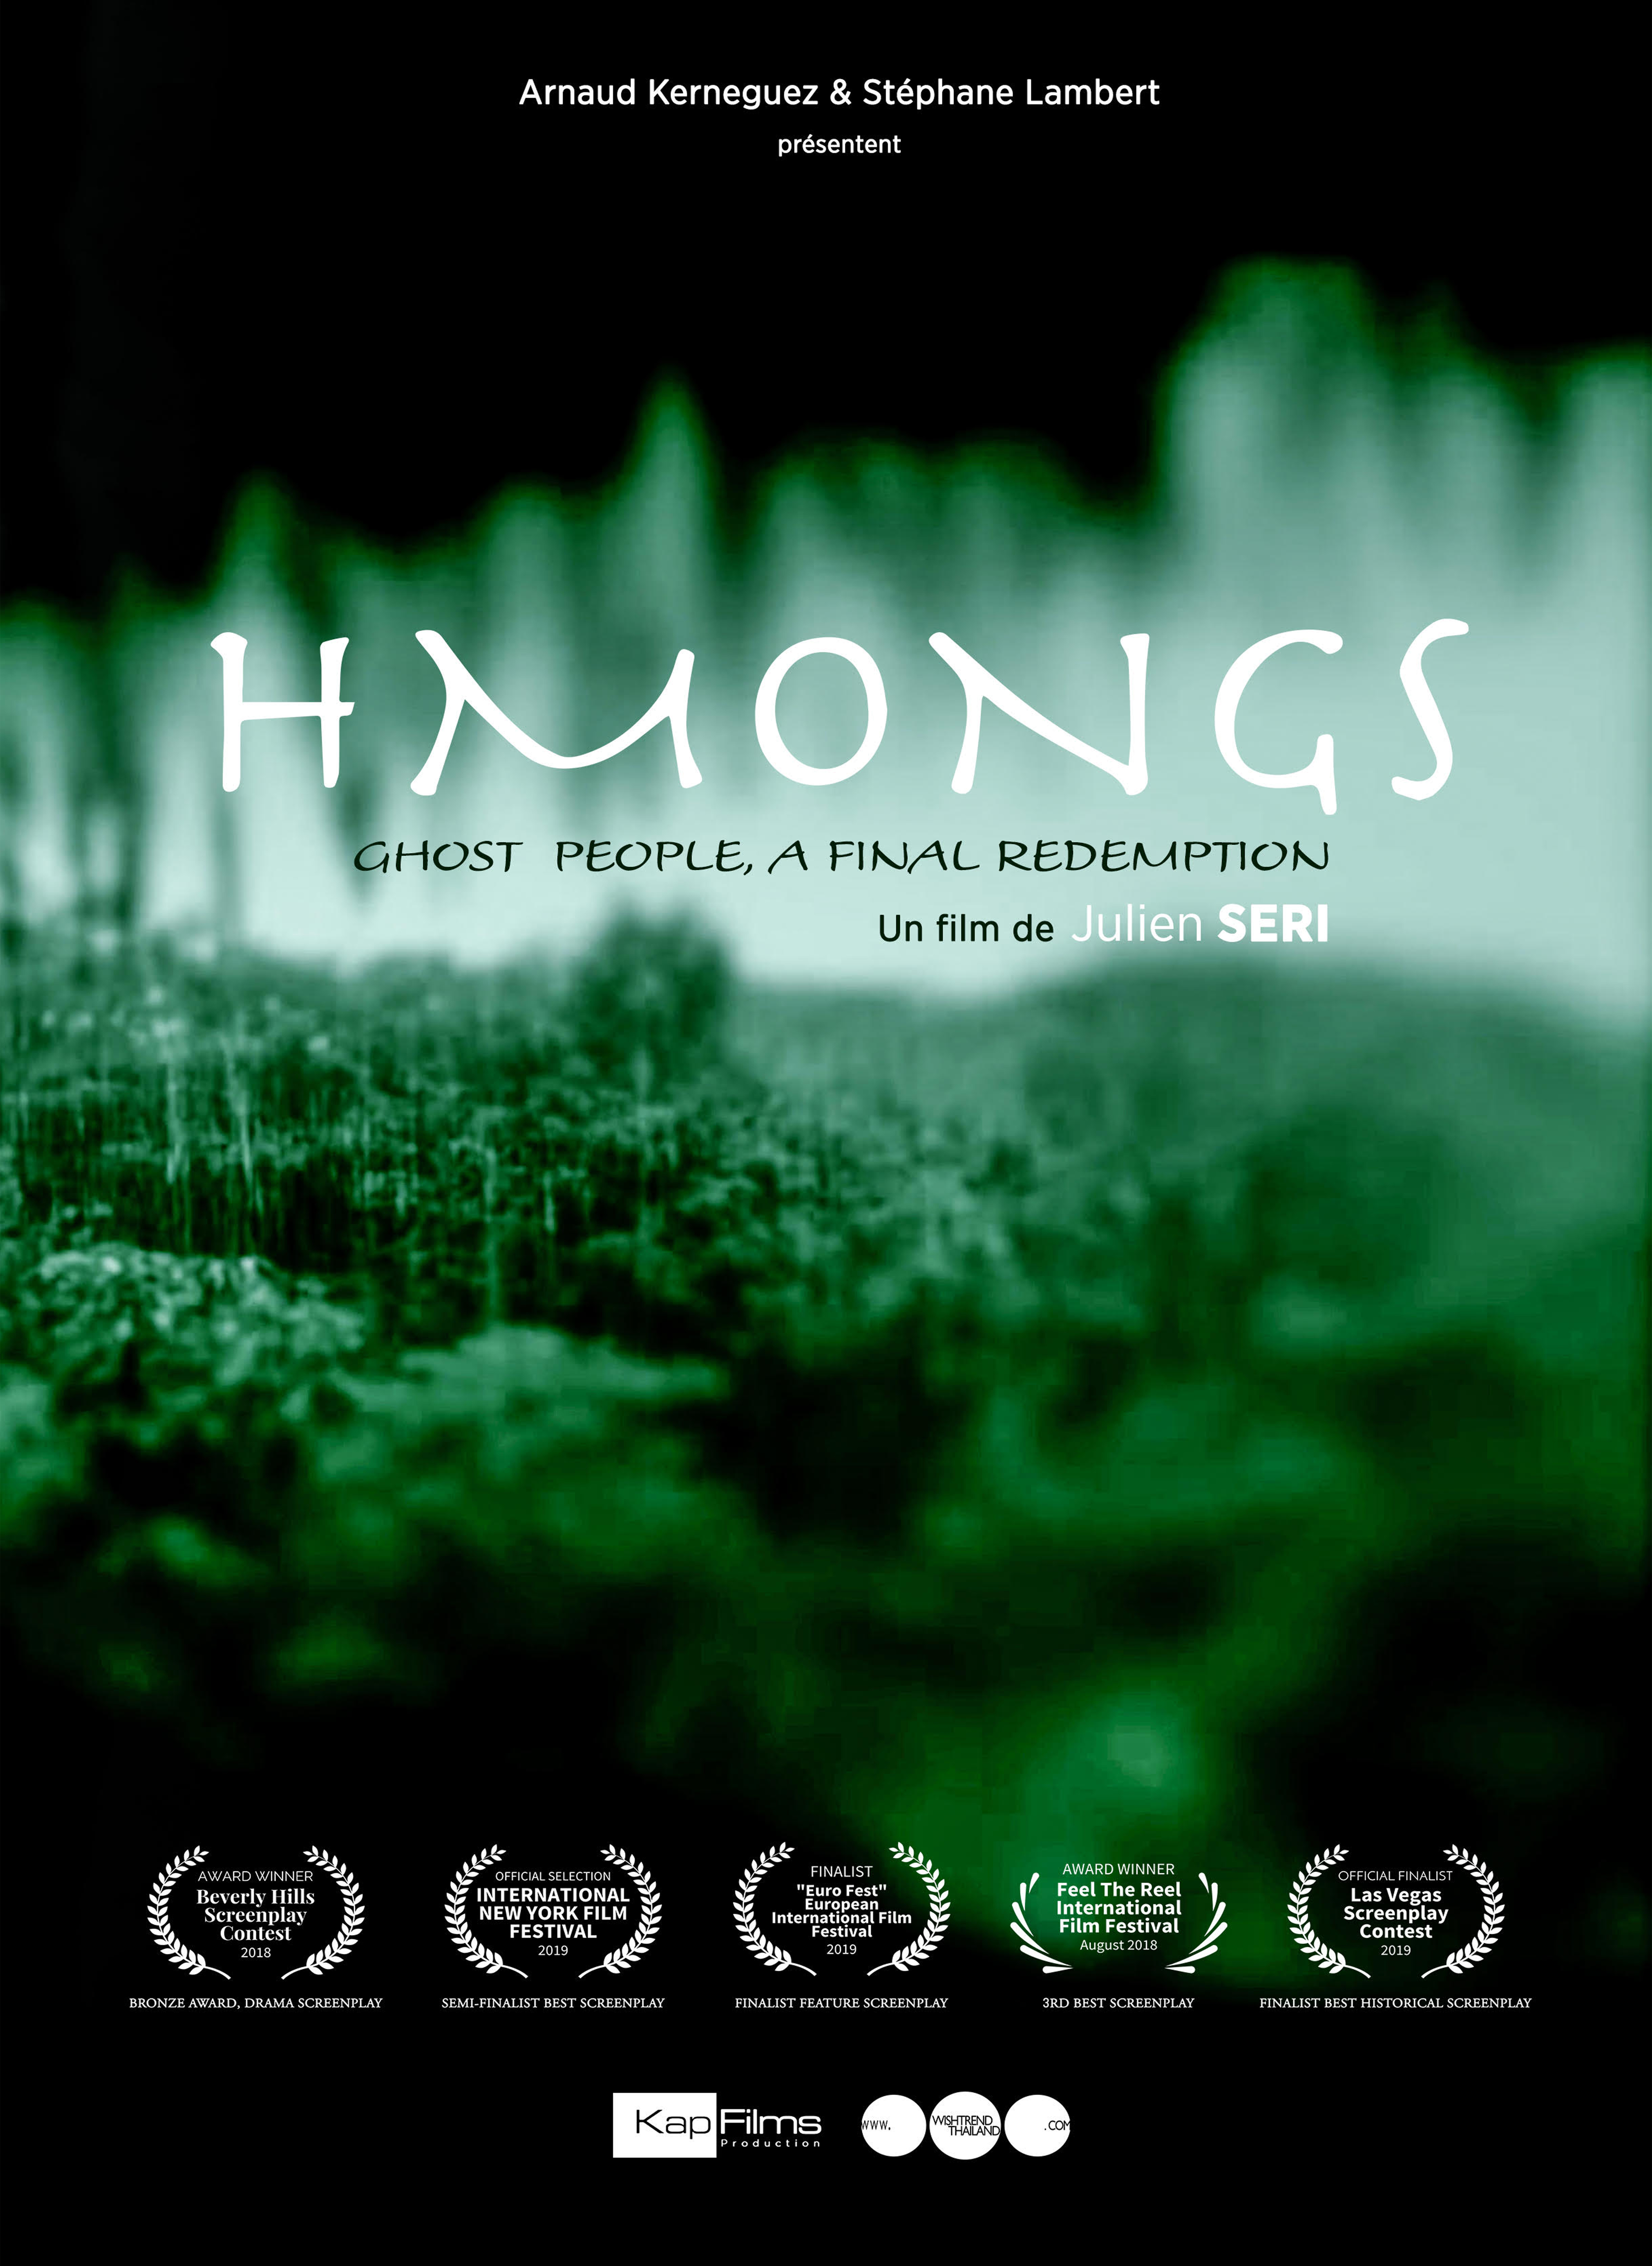 Hmong Poster SL_Resize